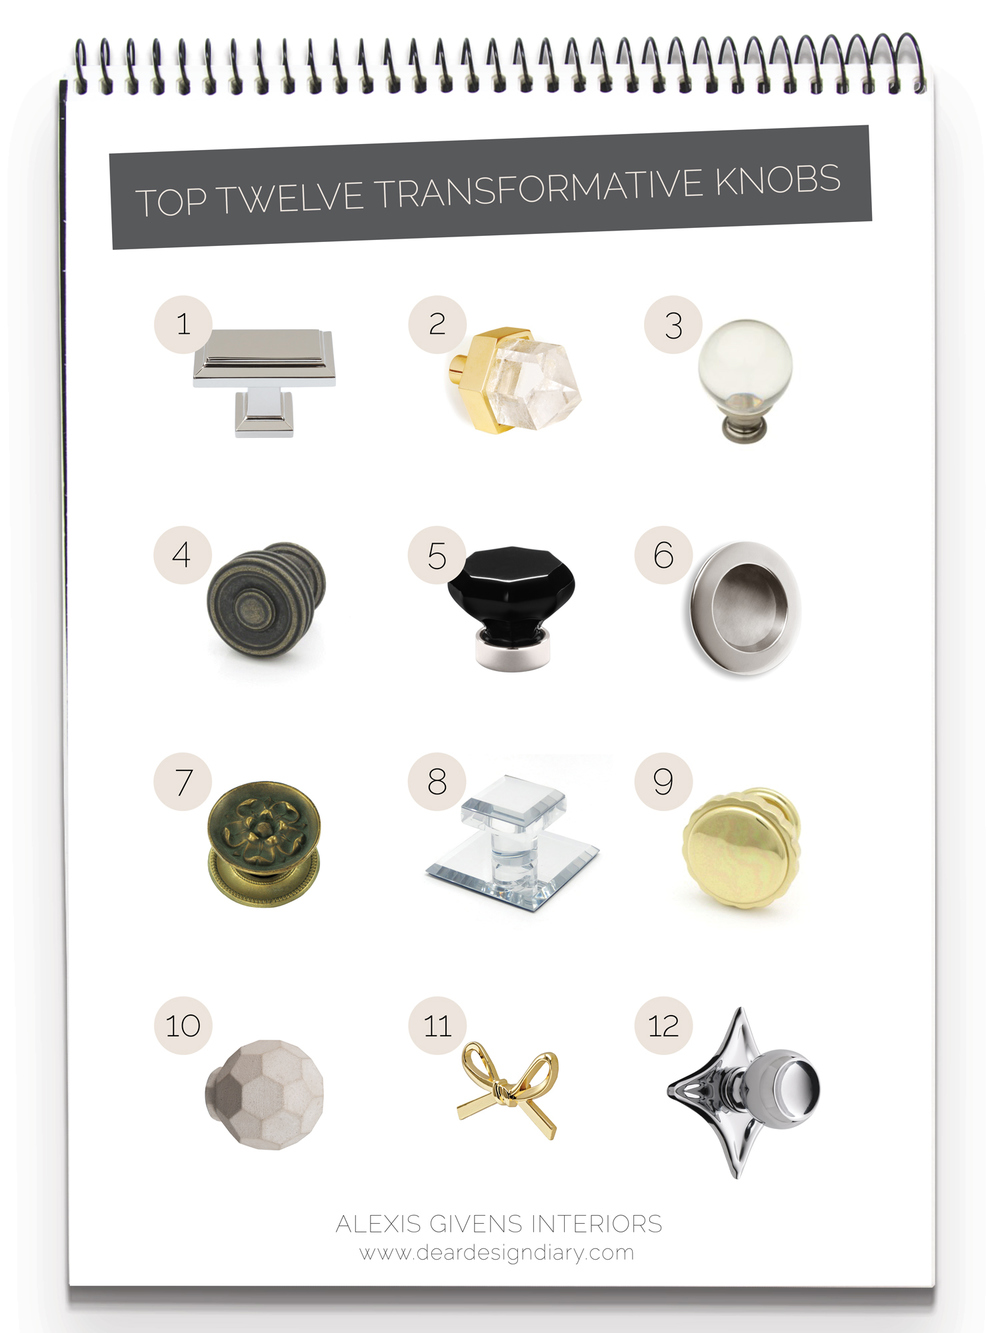 1) Sutton Place Rectangle Knob by Atlas Homewares, wayfair.com, starting at $32.90  2) Thea Small Cabinet Knob, deringhall.com, contact for pricing  3) Crystal Cabinet Knob, baldwinhardware.com, contact for pricing  4) Antiqued Knob #557539167, hickoryhardware.com, $4.26  5) Traditional Black Glass Knob, restorationhardware.com, $14-16  6) No. 6089, nanz.com, contact for pricing  7) Sheraton Knob, whitechapel-ltd.com, $45.20  8) Acrylic Mirror Pull Knob by Barton Kramer, homedepot.com, $7.96  9) Polished Brass Knob #659119014, hickoryhardware.com, $10.37  10) Stella Concrete Cabinet Knob, rejuvenation.com, $25  11) Hand-picked Bow Knob, landofnod.com, $8.95  12) Saturn Cabinet Knob with Star Backplace, rejuvenation.com, $11